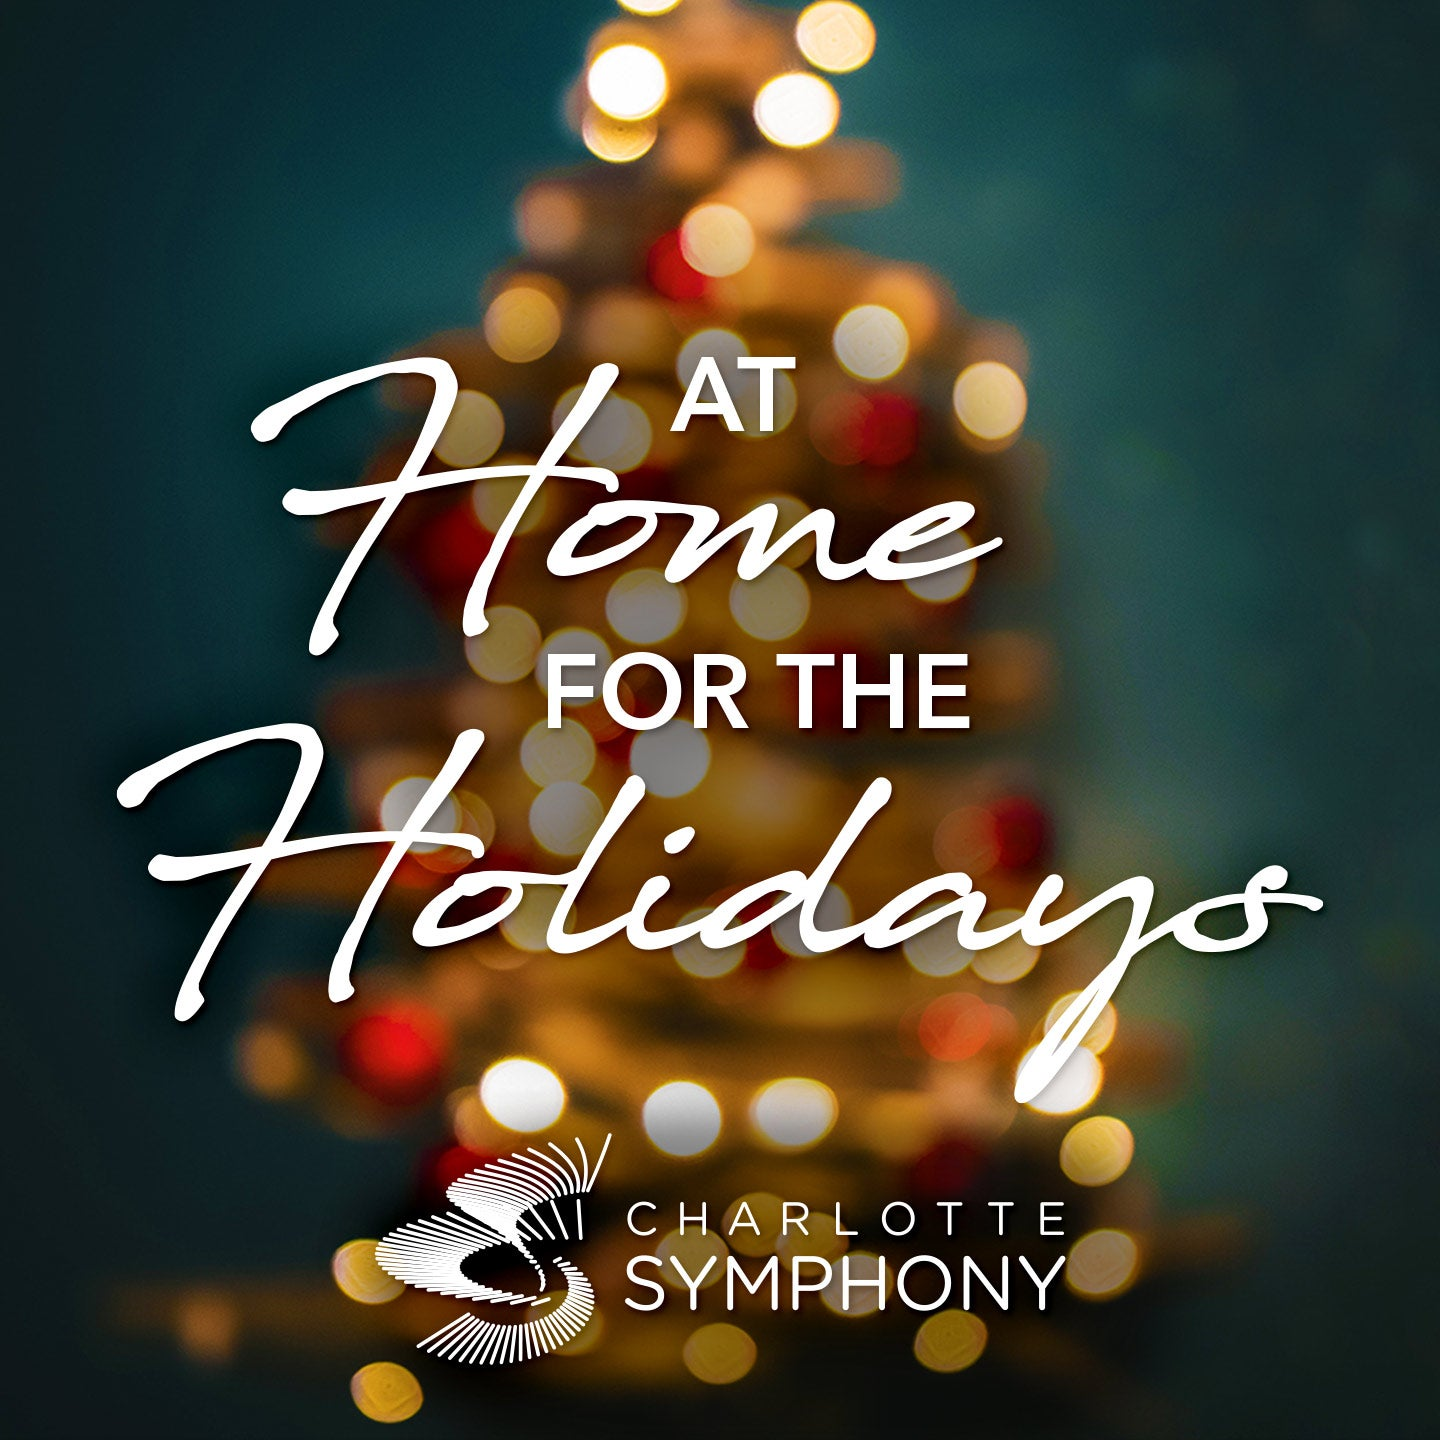 Charlotte Symphony: At Home for the Holidays